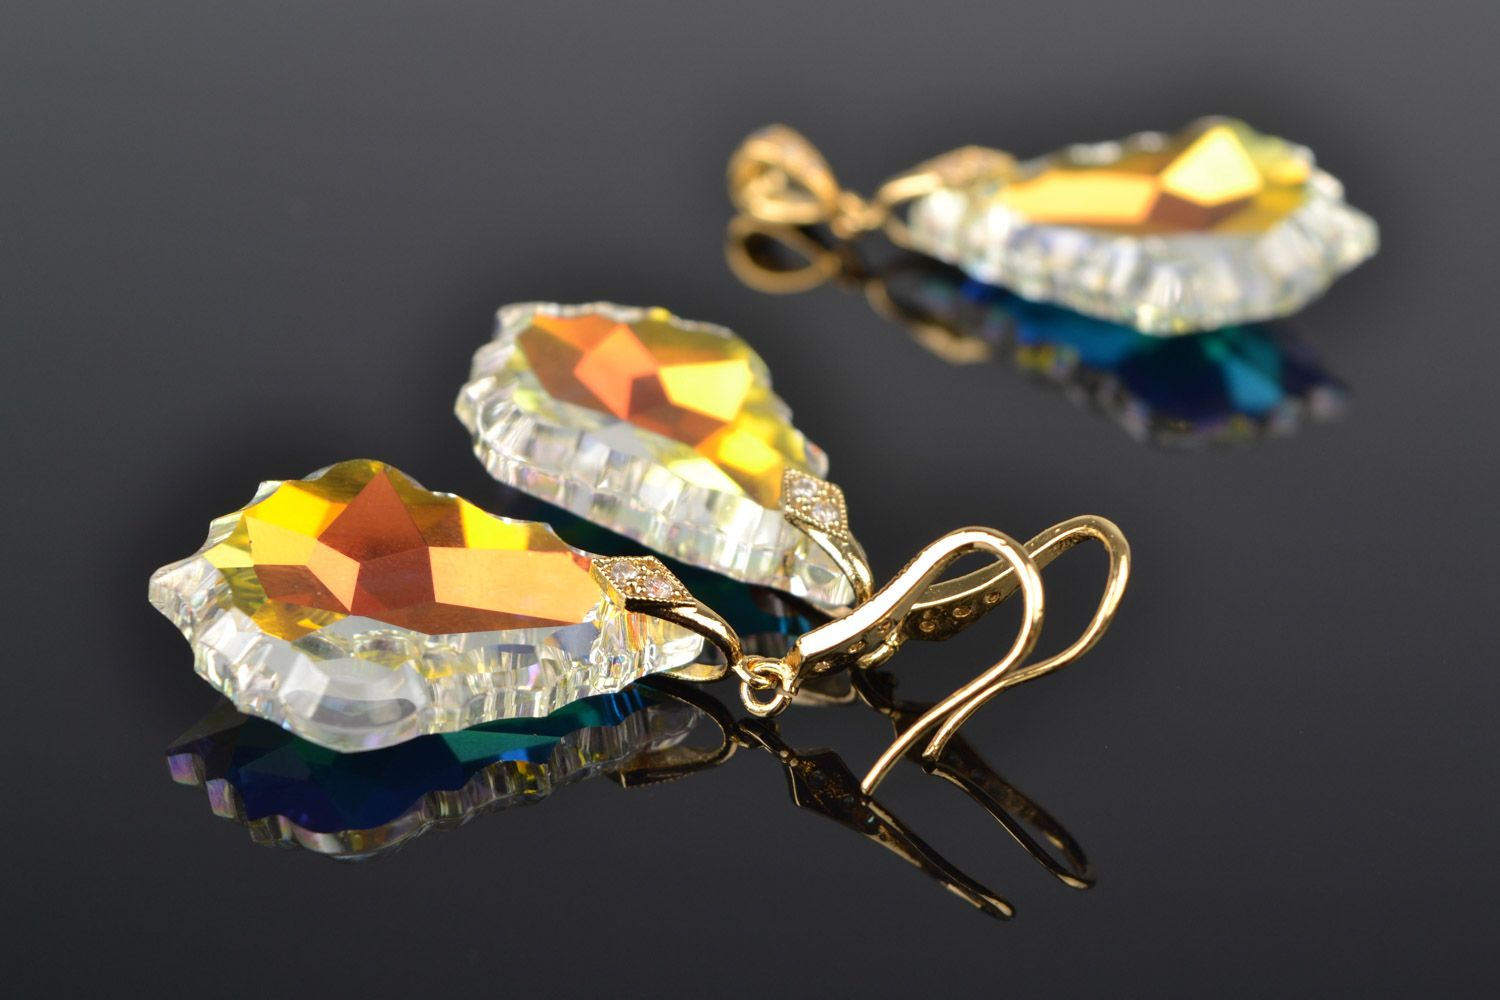 Handmade yellow evening beaded earrings and pendant with Austrian crystals 2 items designer jewelry set photo 1